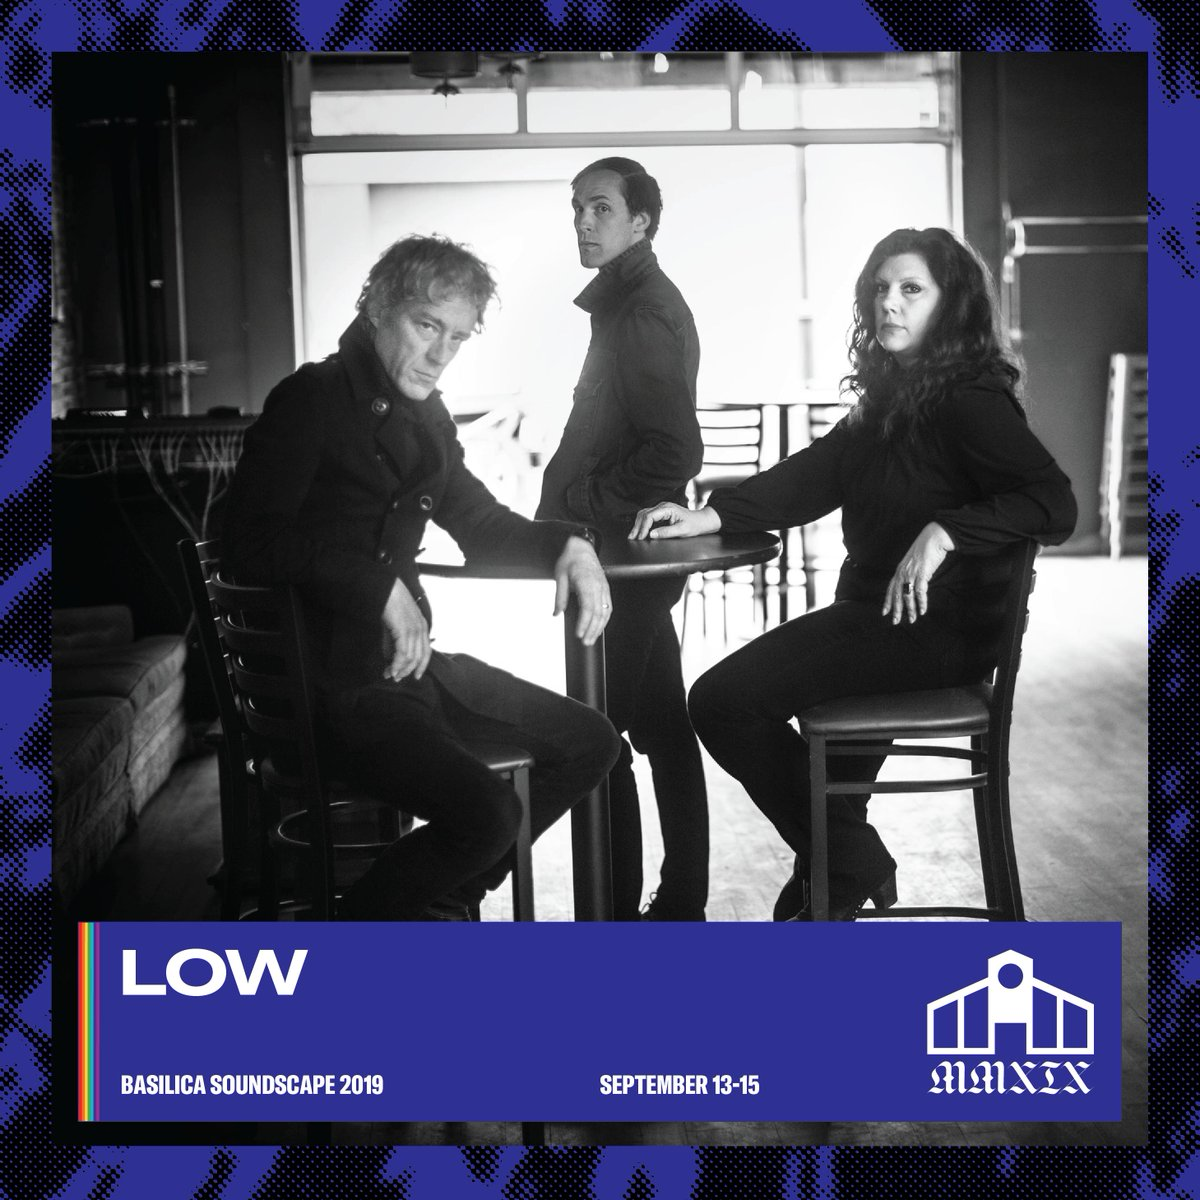 Nine weeks today @lowtheband play Basilica SoundScape. Weekend and day passes selling 🔥 FAST 🔥 bit.ly/basilicasounds… #BSS19